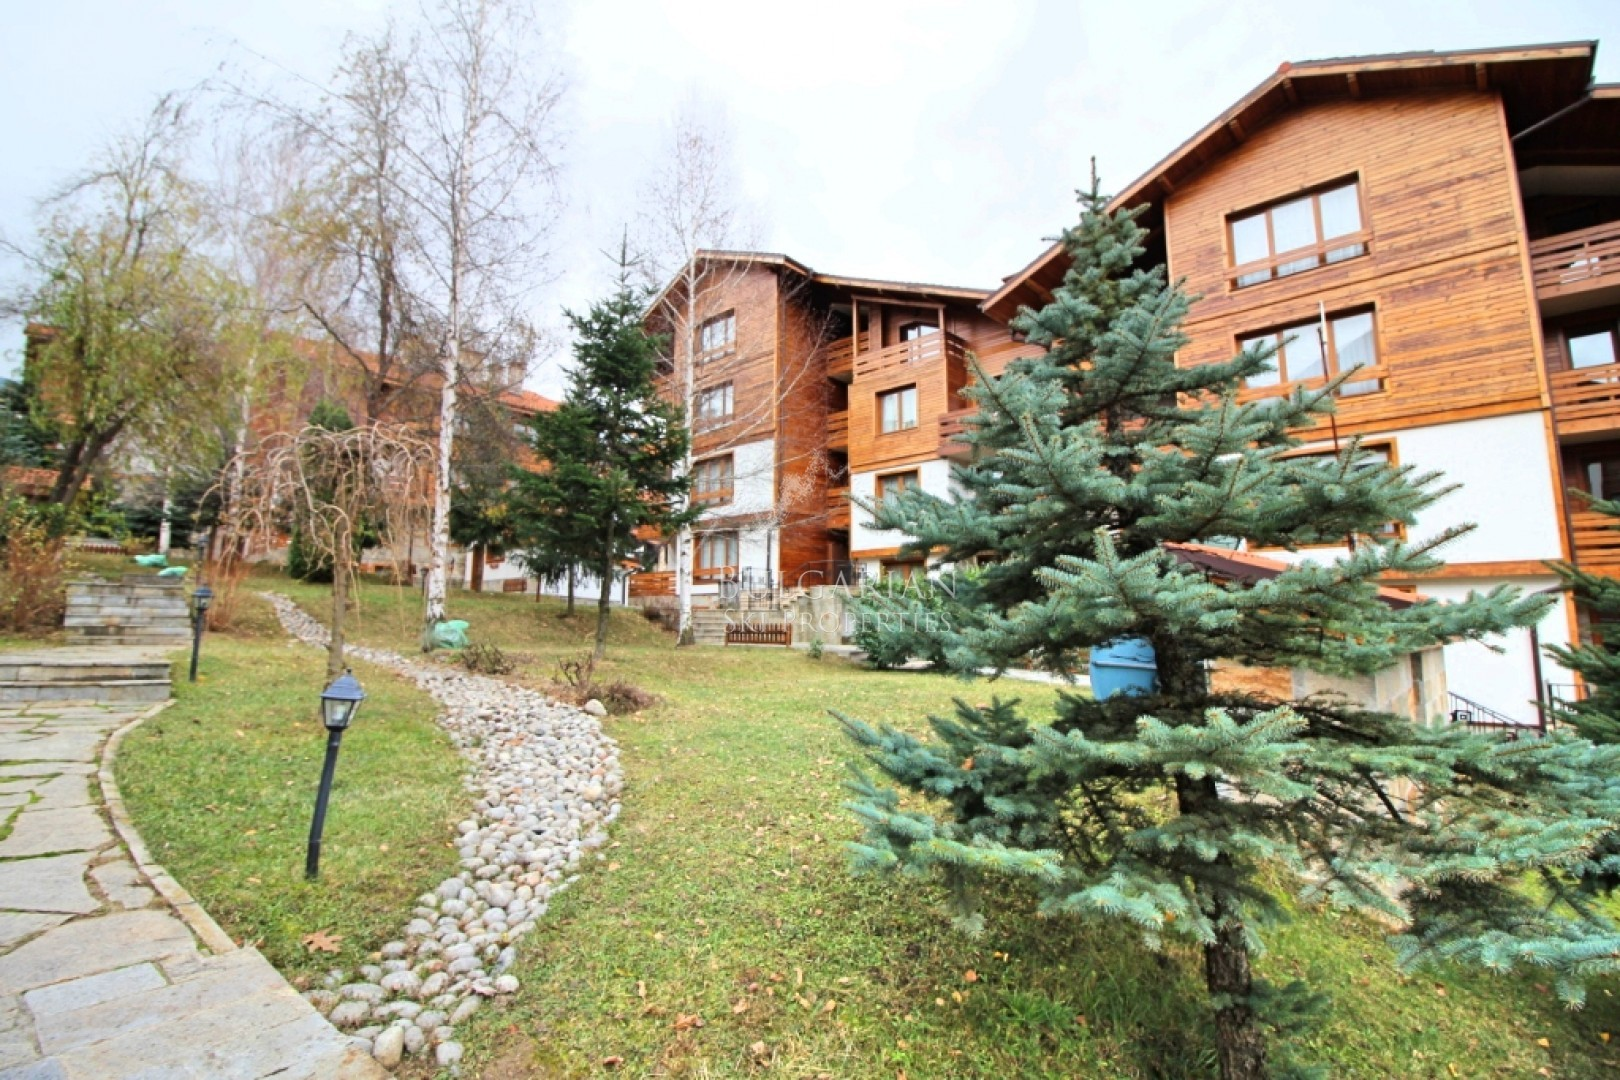 Bansko, St. Ivan Rilski Hotel, Spa & Apartments: Furnished one bedroom apartment for sale